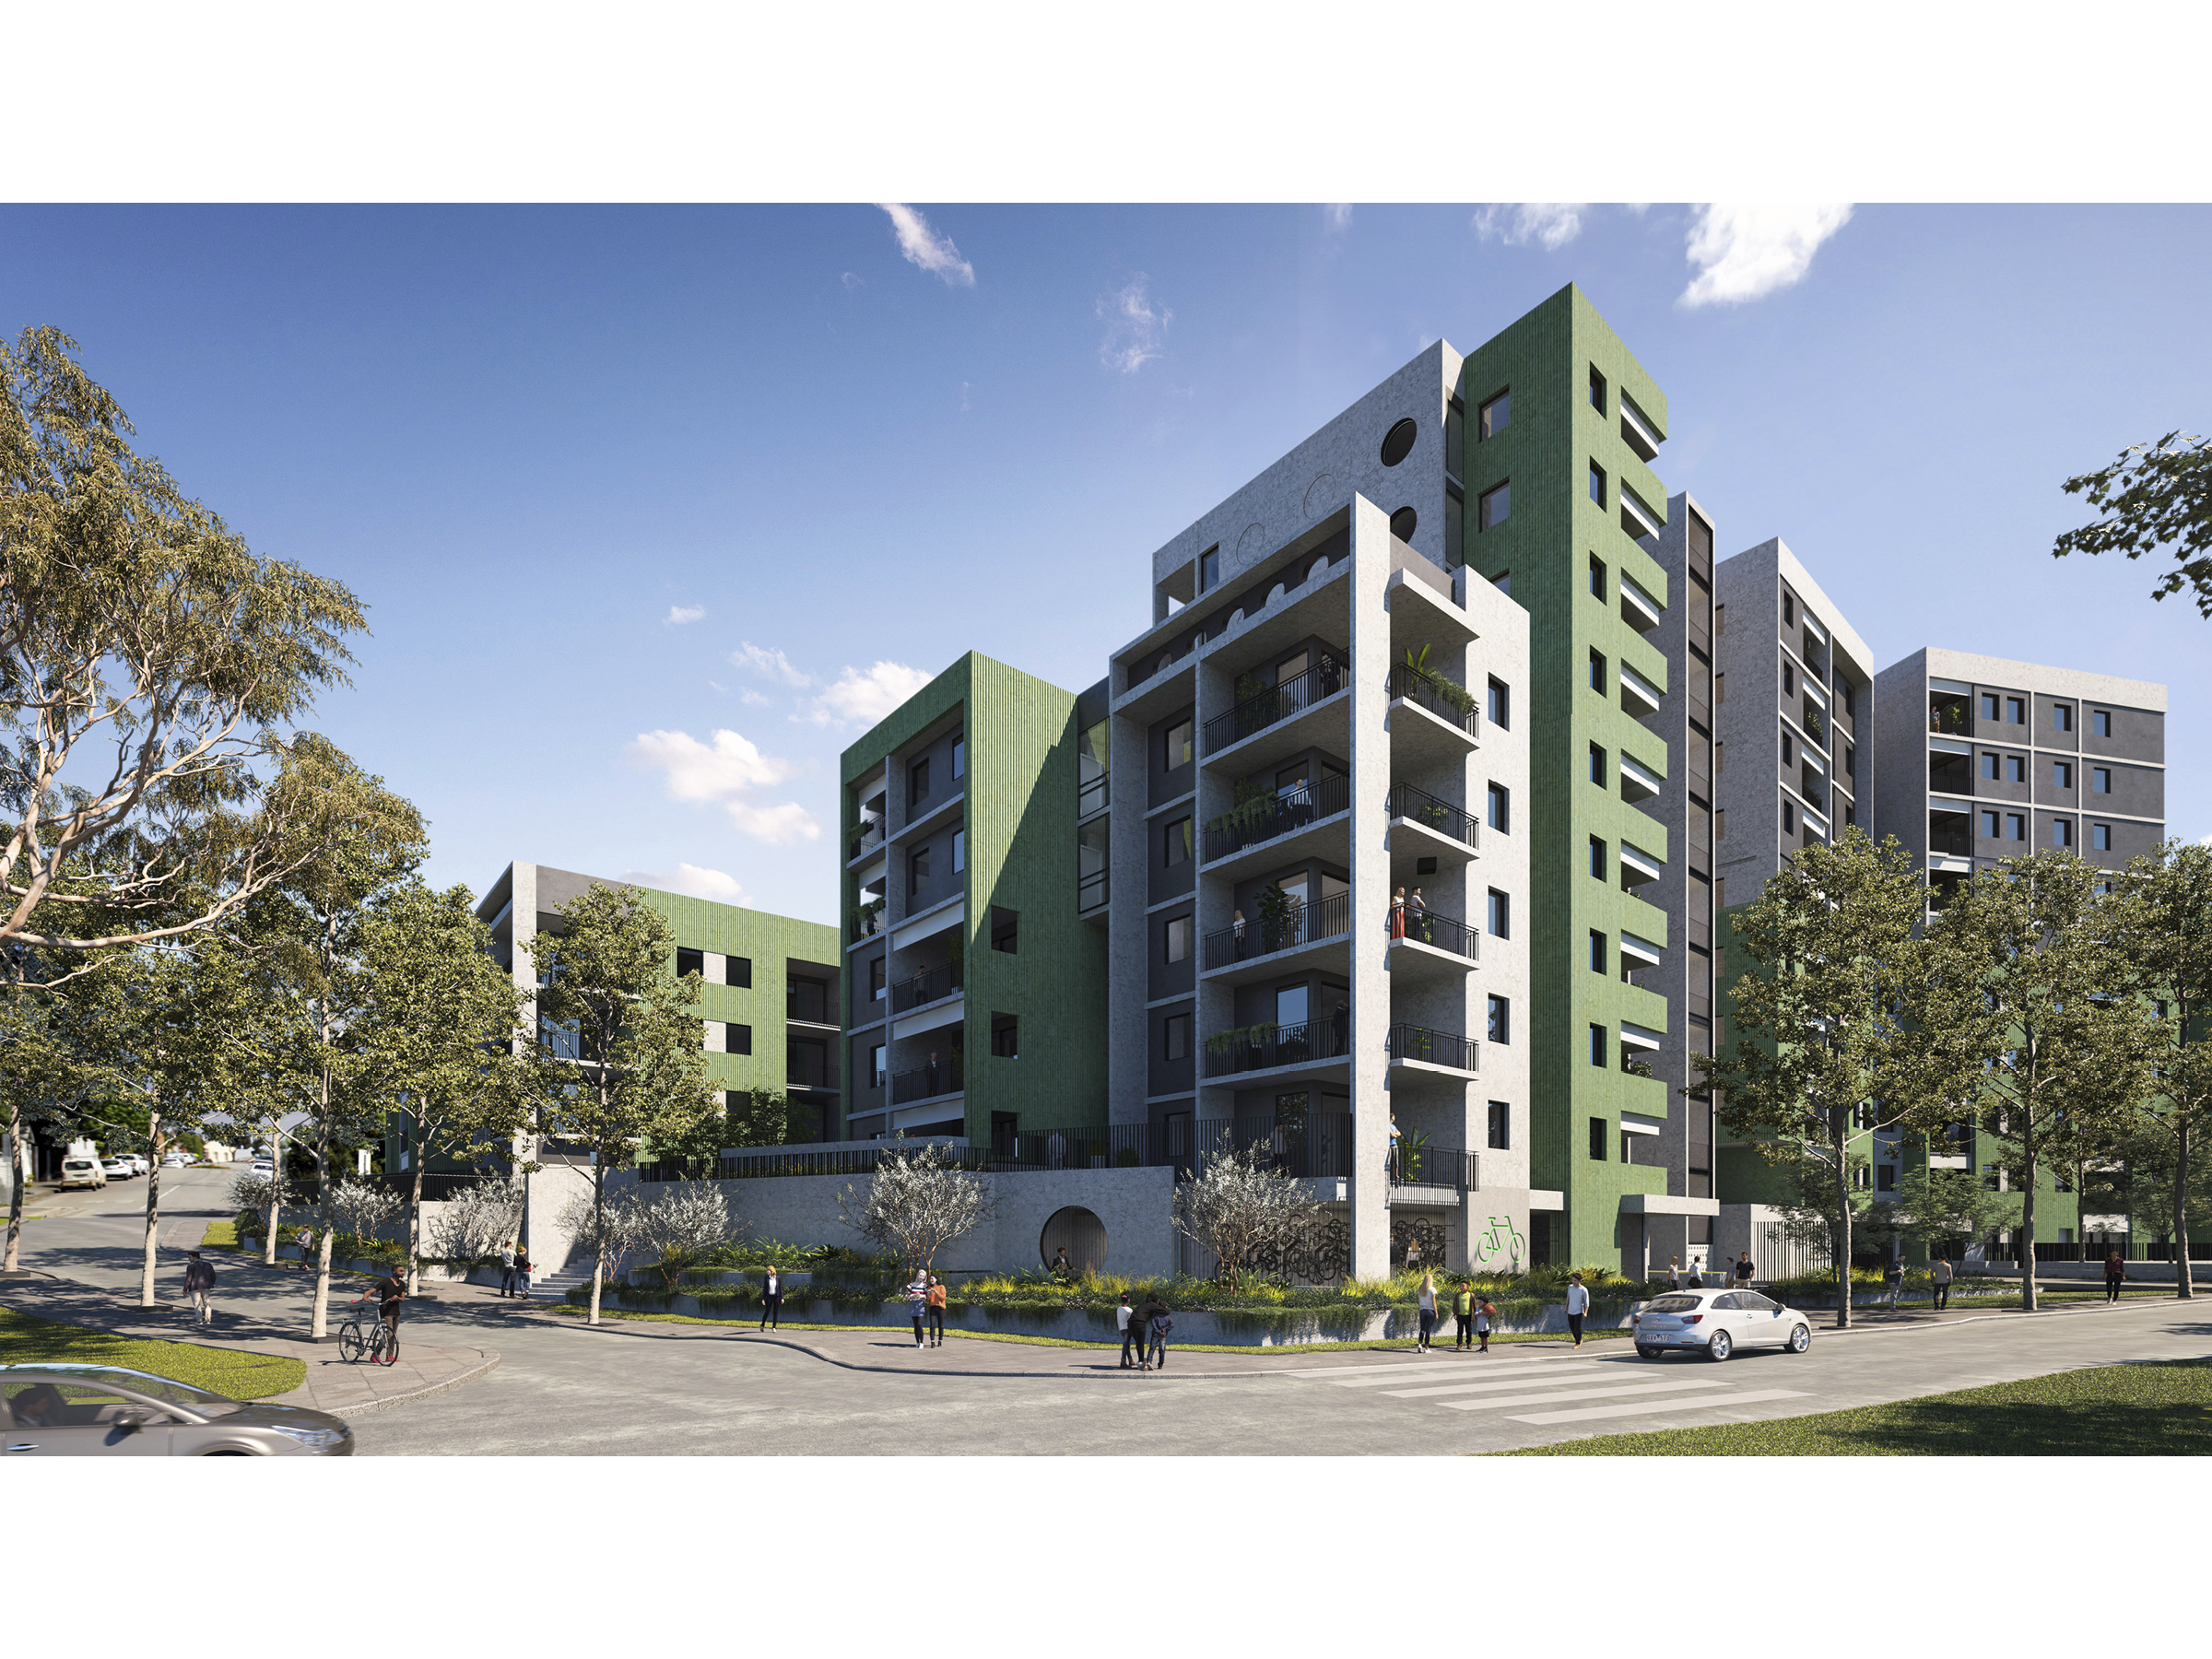 Artist impression showing the new development from New Holland Crescent looking north